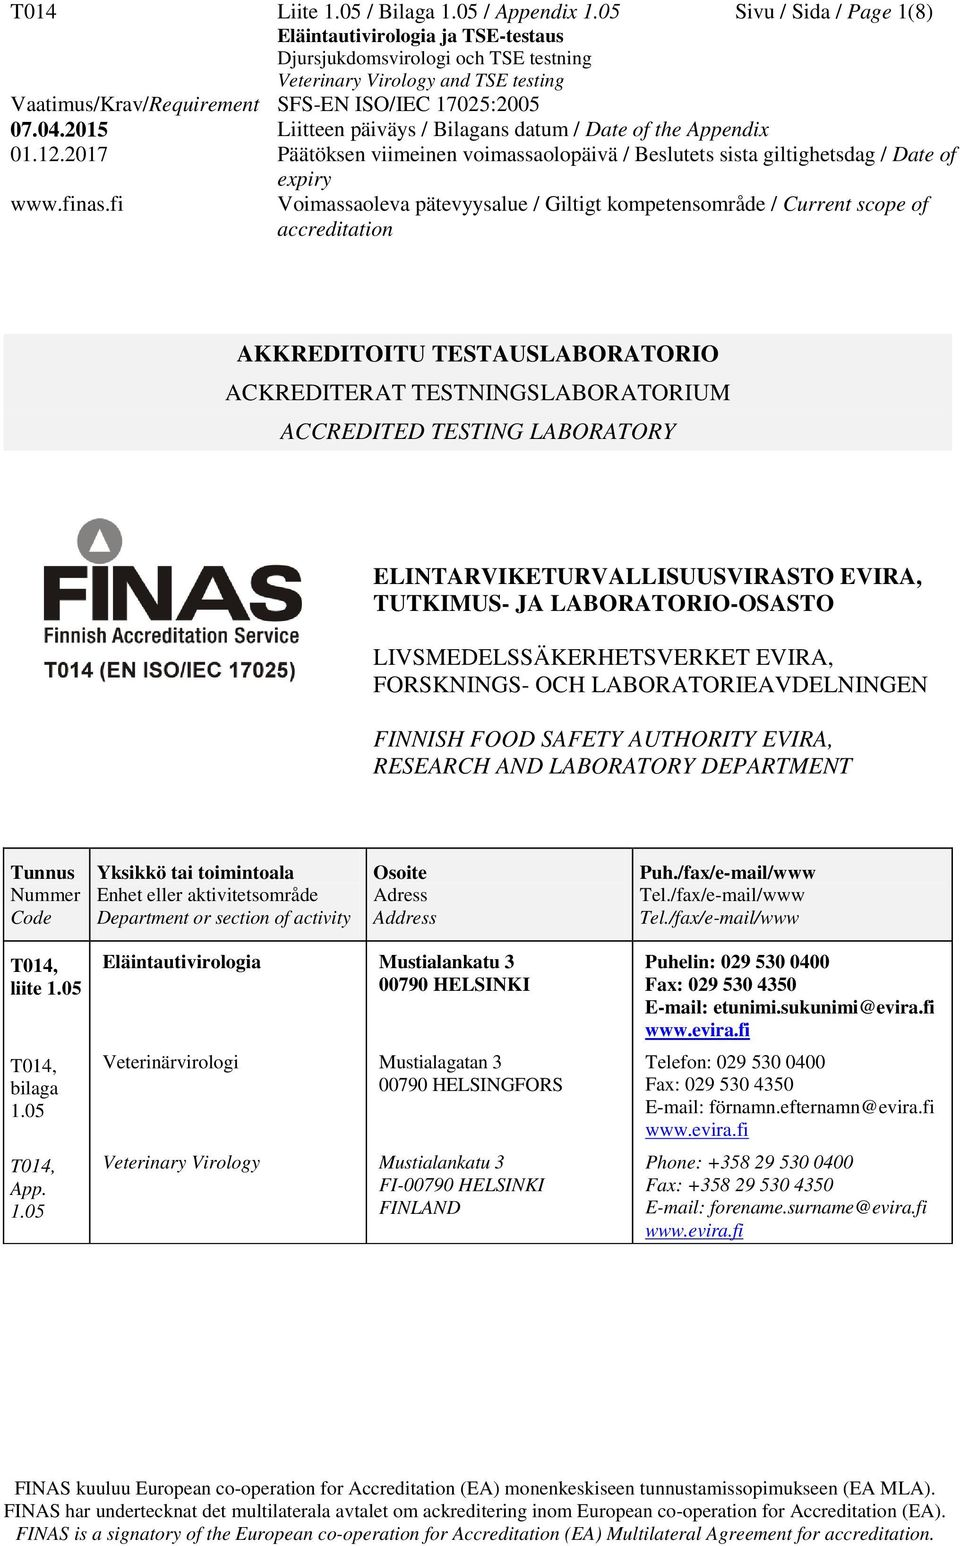 LIVSMEDELSSÄKERHETSVERKET EVIRA, FORSKNINGS- OCH LABORATORIEAVDELNINGEN FINNISH FOOD SAFETY AUTHORITY EVIRA, RESEARCH AND LABORATORY DEPARTMENT Tunnus Nummer Code Yksikkö tai toimintoala Enhet eller